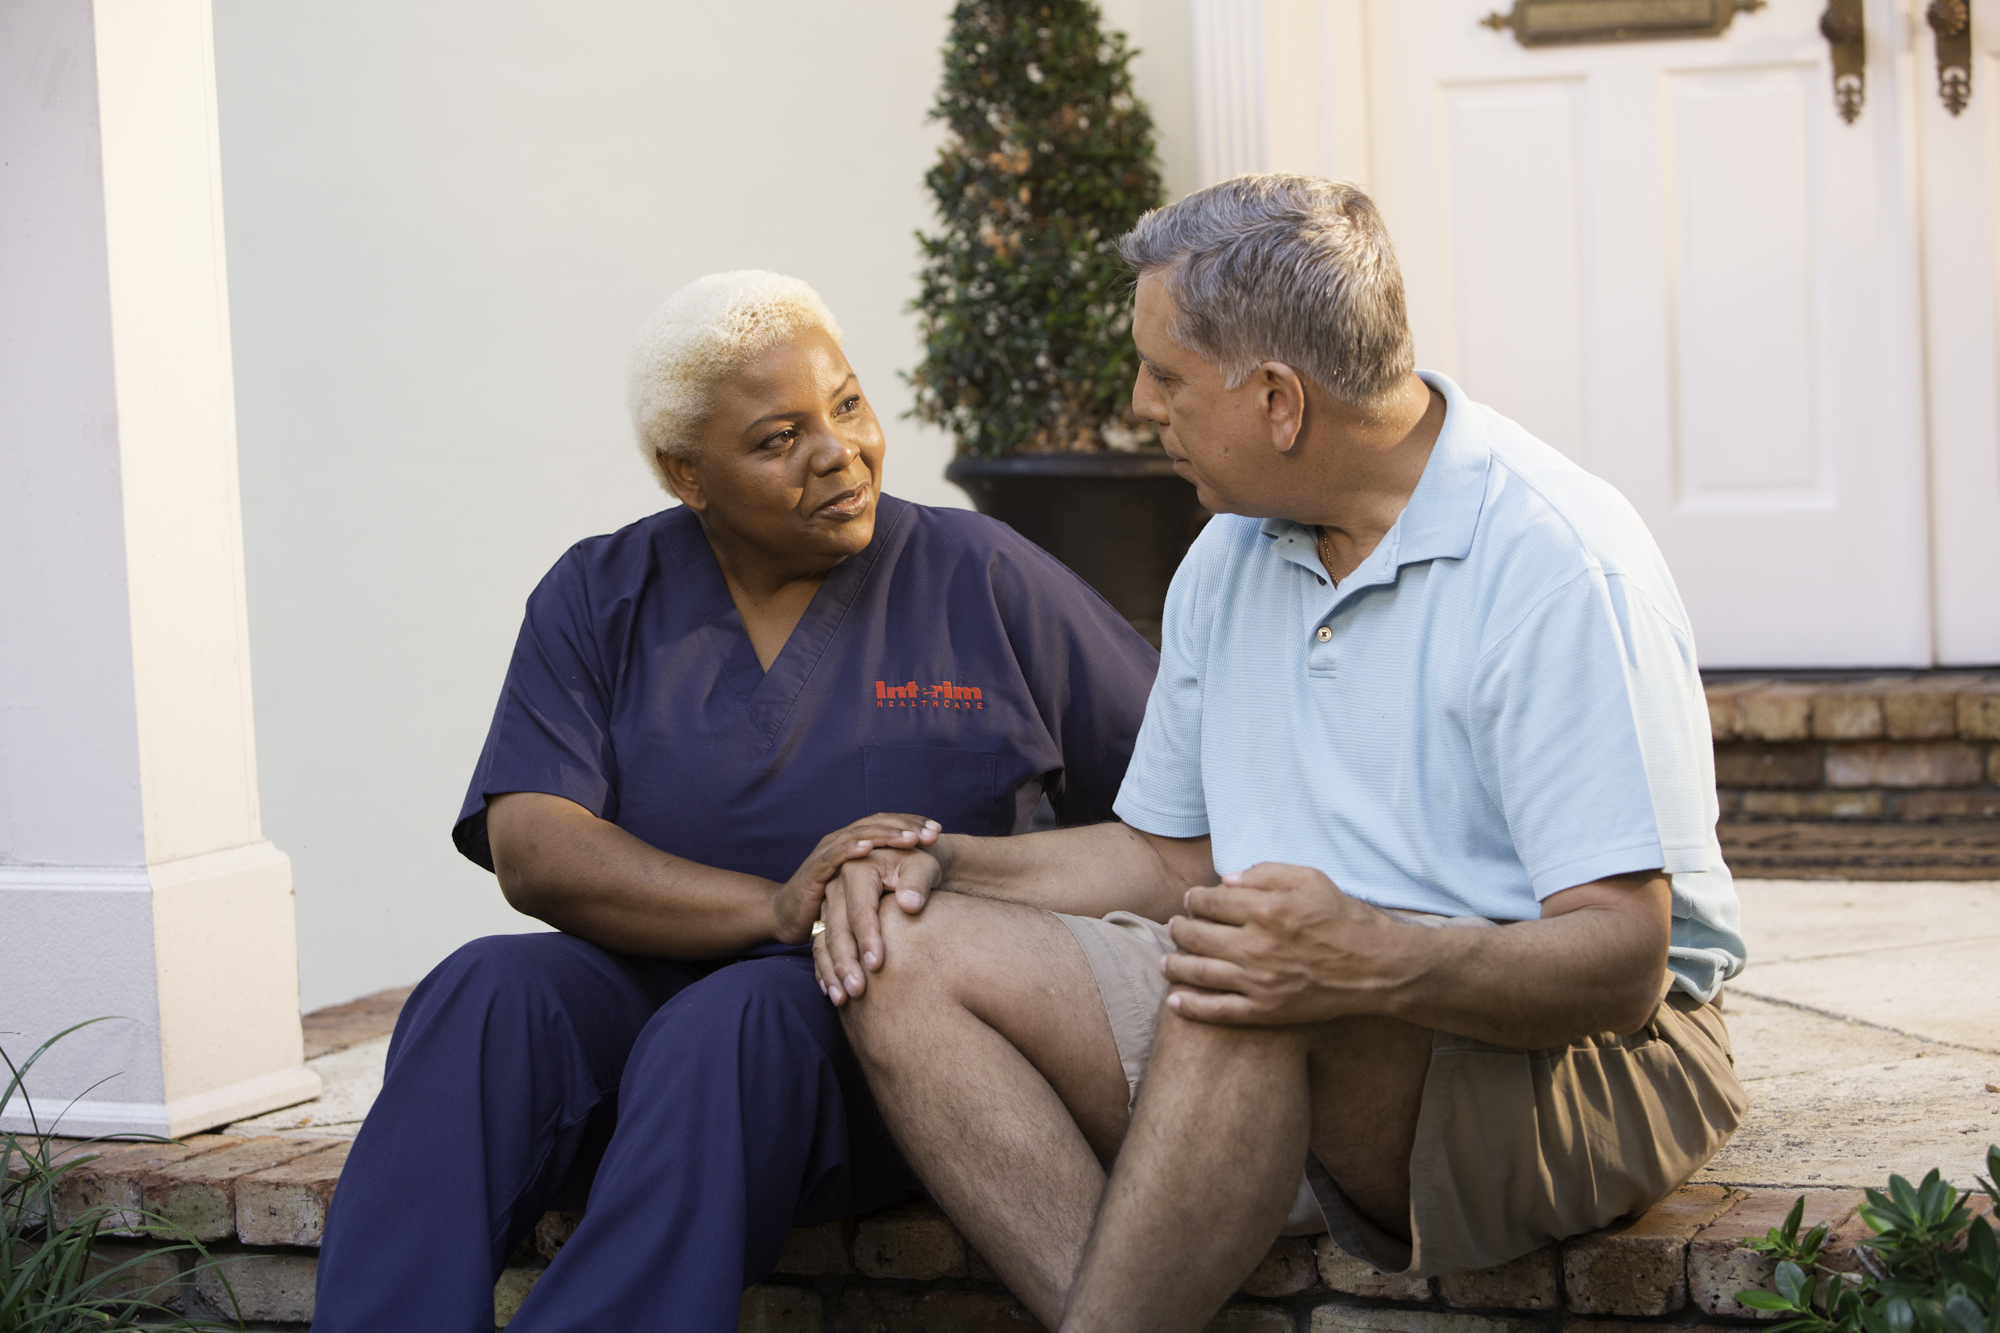 A home care professional provides care for a gentleman with Alzheimer's Disease